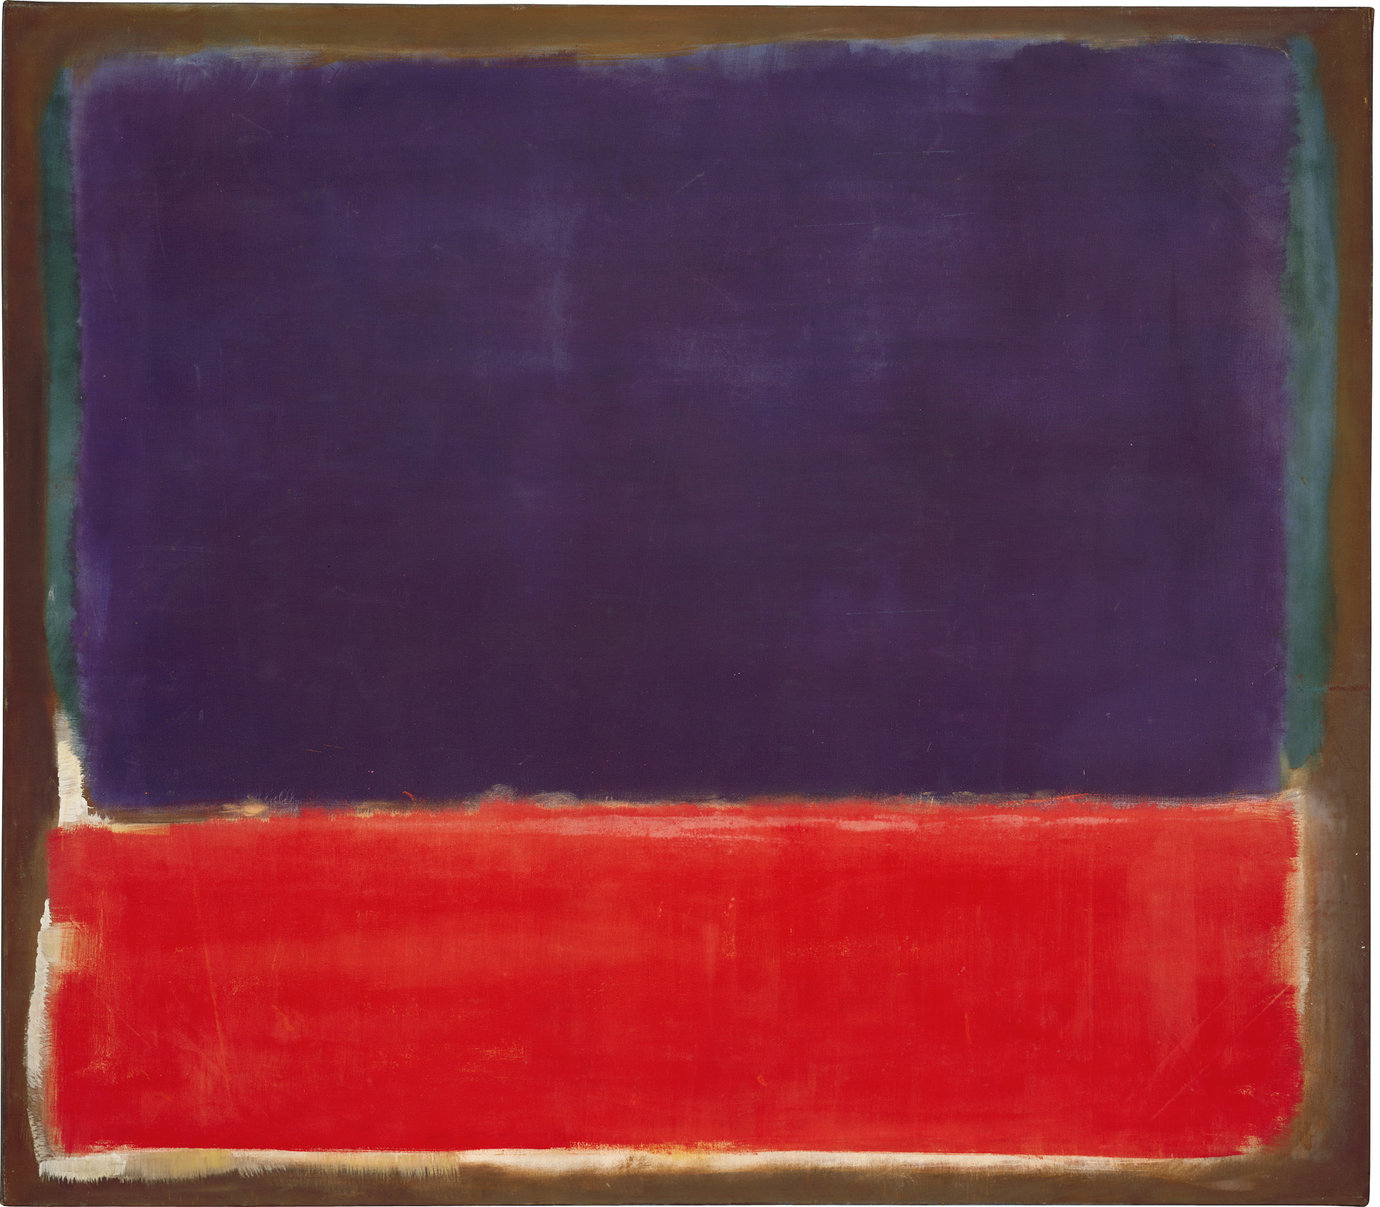 ", 1951 (c. 1949-1951). Oil on canvas, 56-1/2 x 65"" (143.5 x 165.1 cm)."